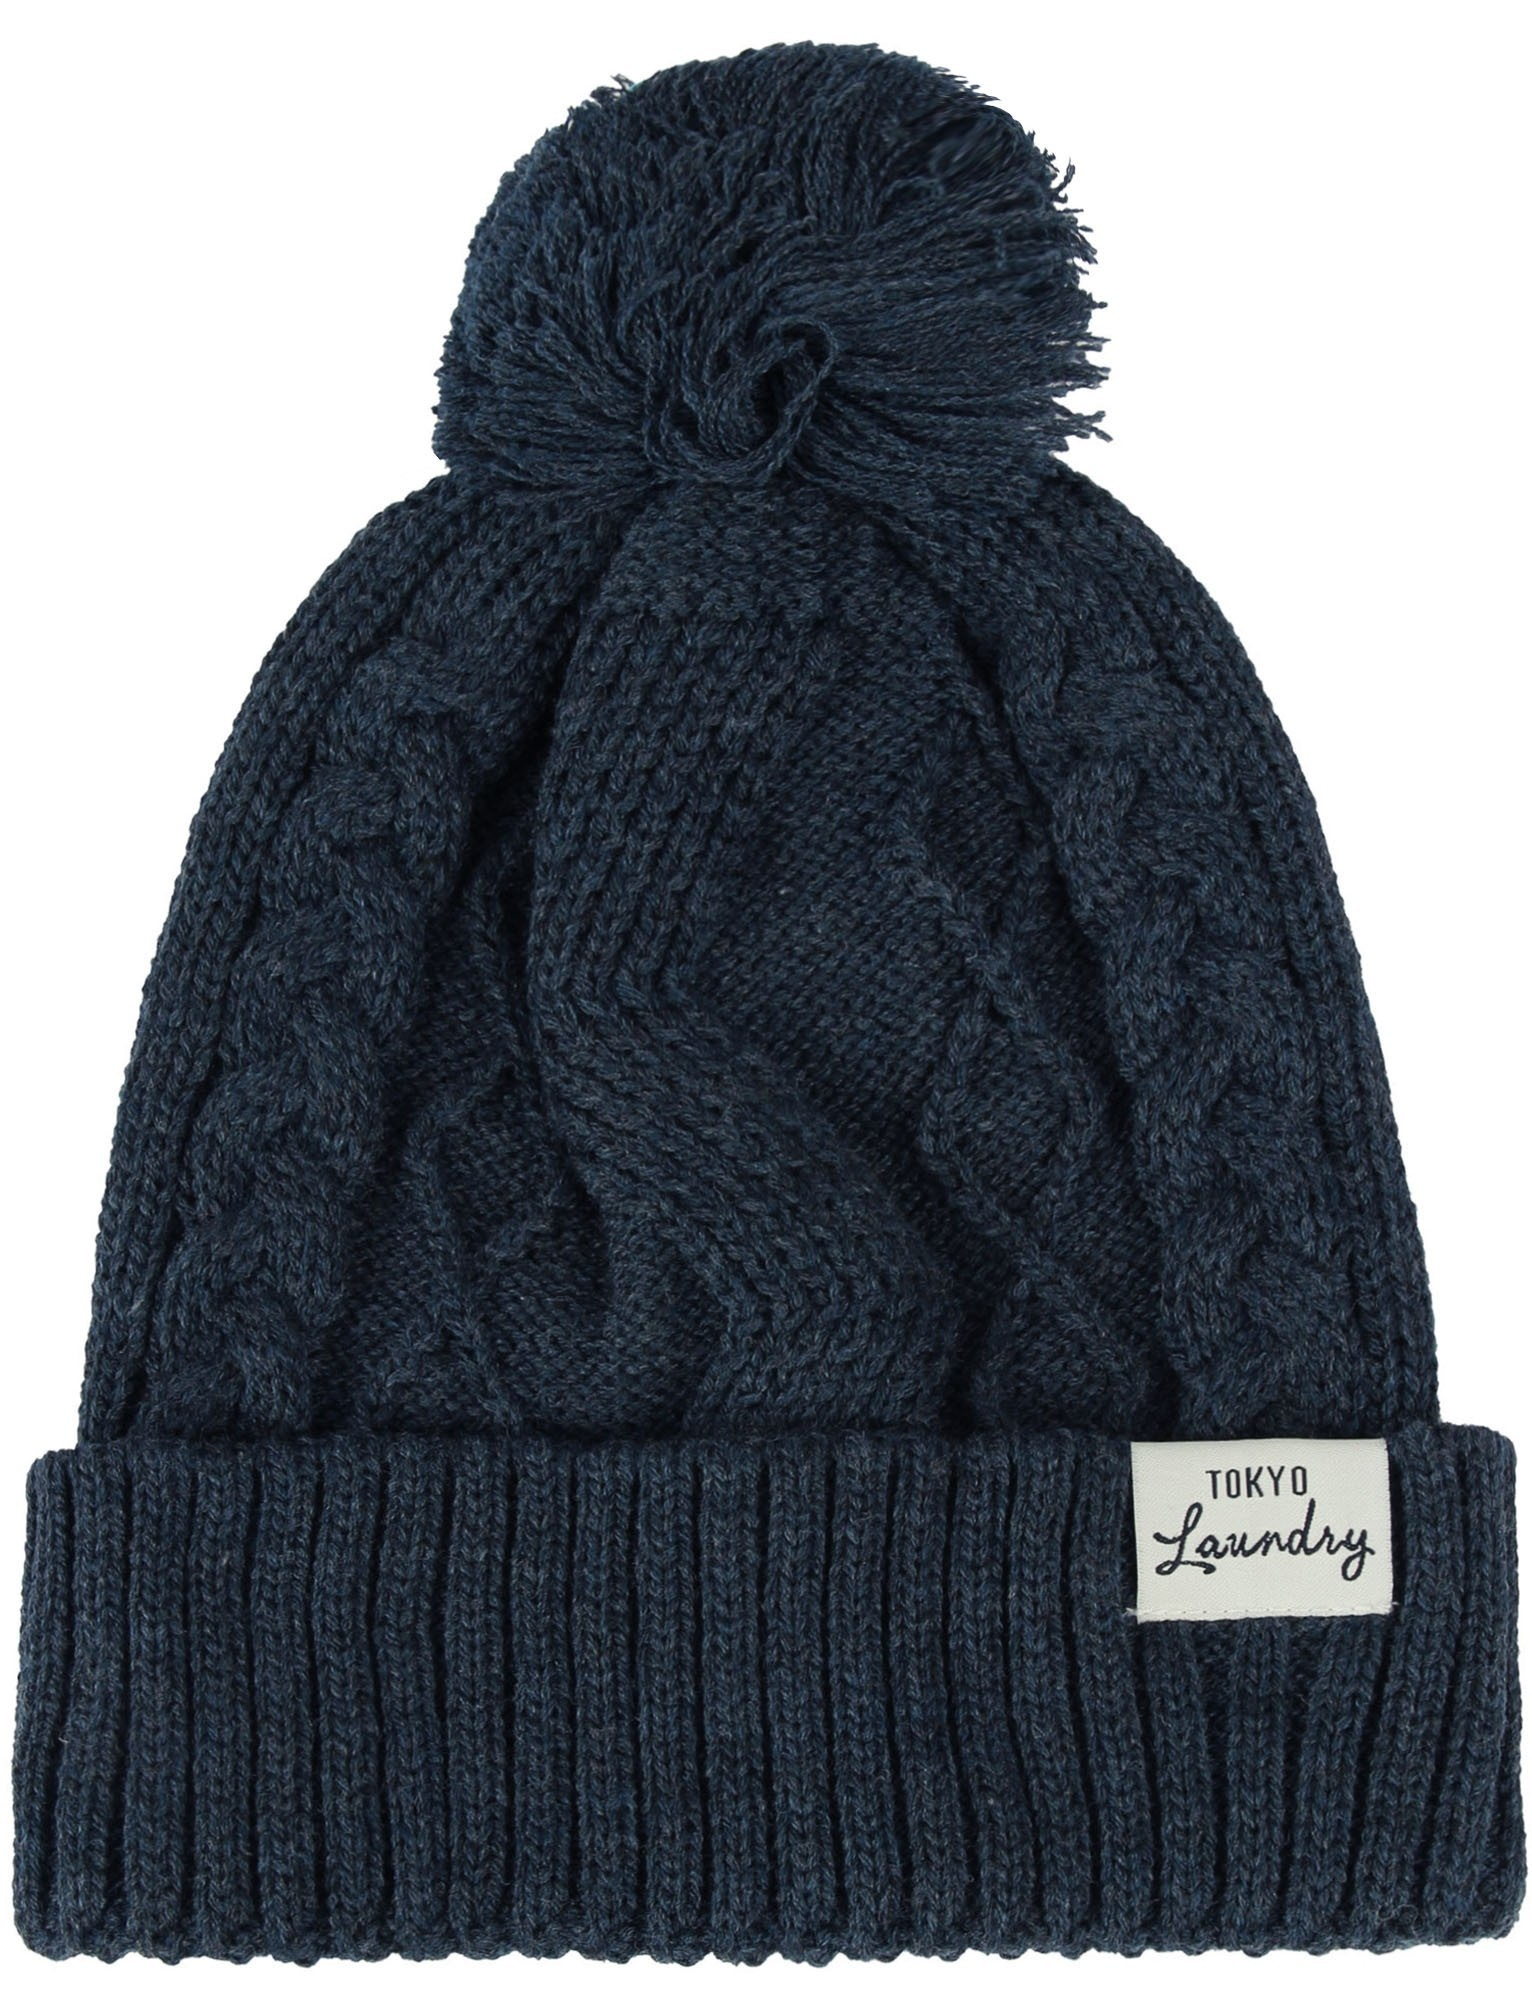 1532x2012 Shailene Cable Knit Bobble Hat in Dark Navy Marl – Tokyo Laundry